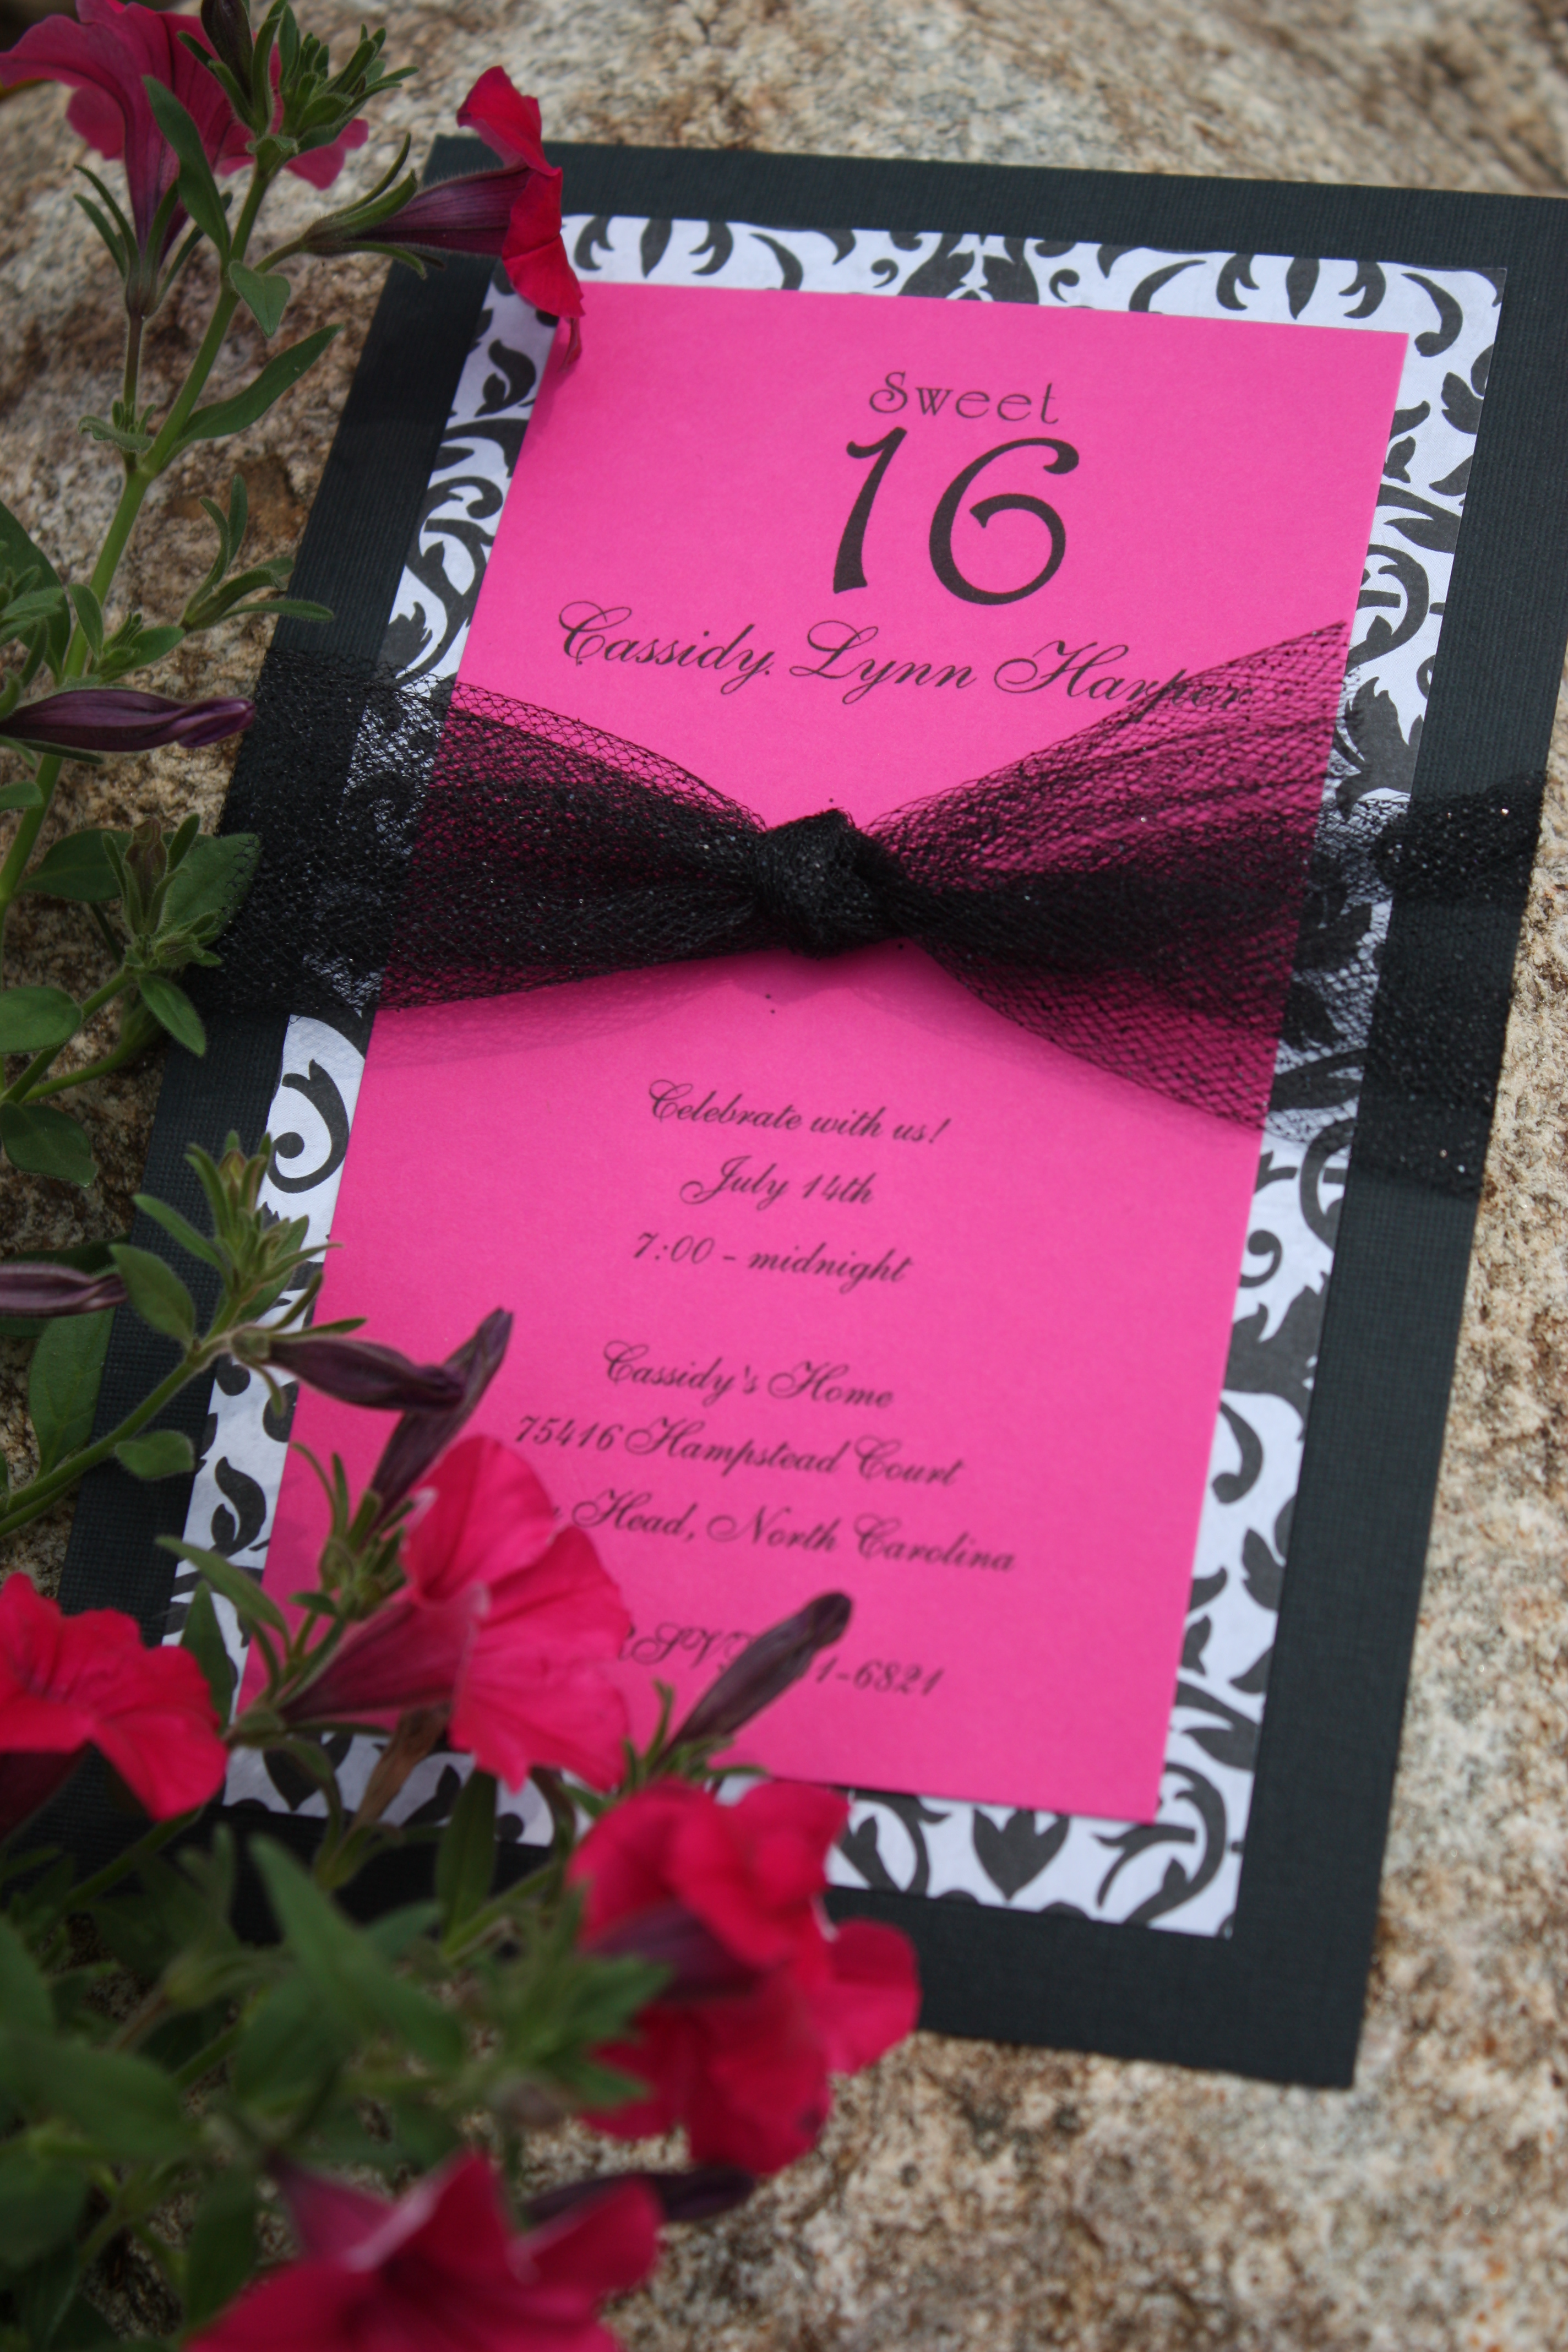 birthday invitation design ideas ; 16th-birthday-party-invitations-to-get-ideas-how-to-make-your-own-party-invitation-design-15